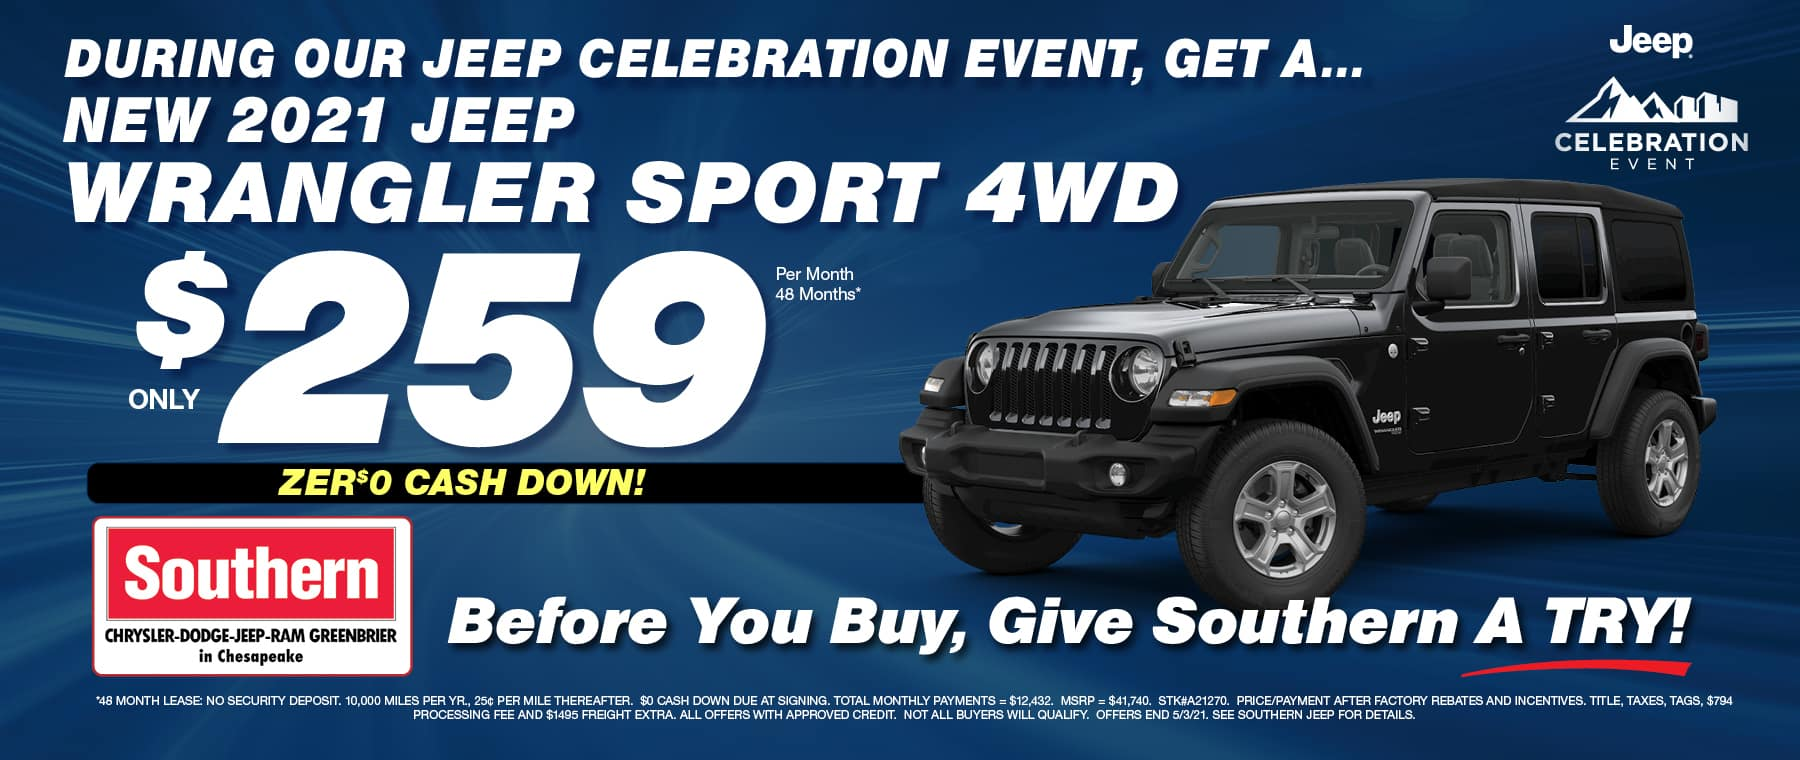 Southern Jeep – Greenbrier